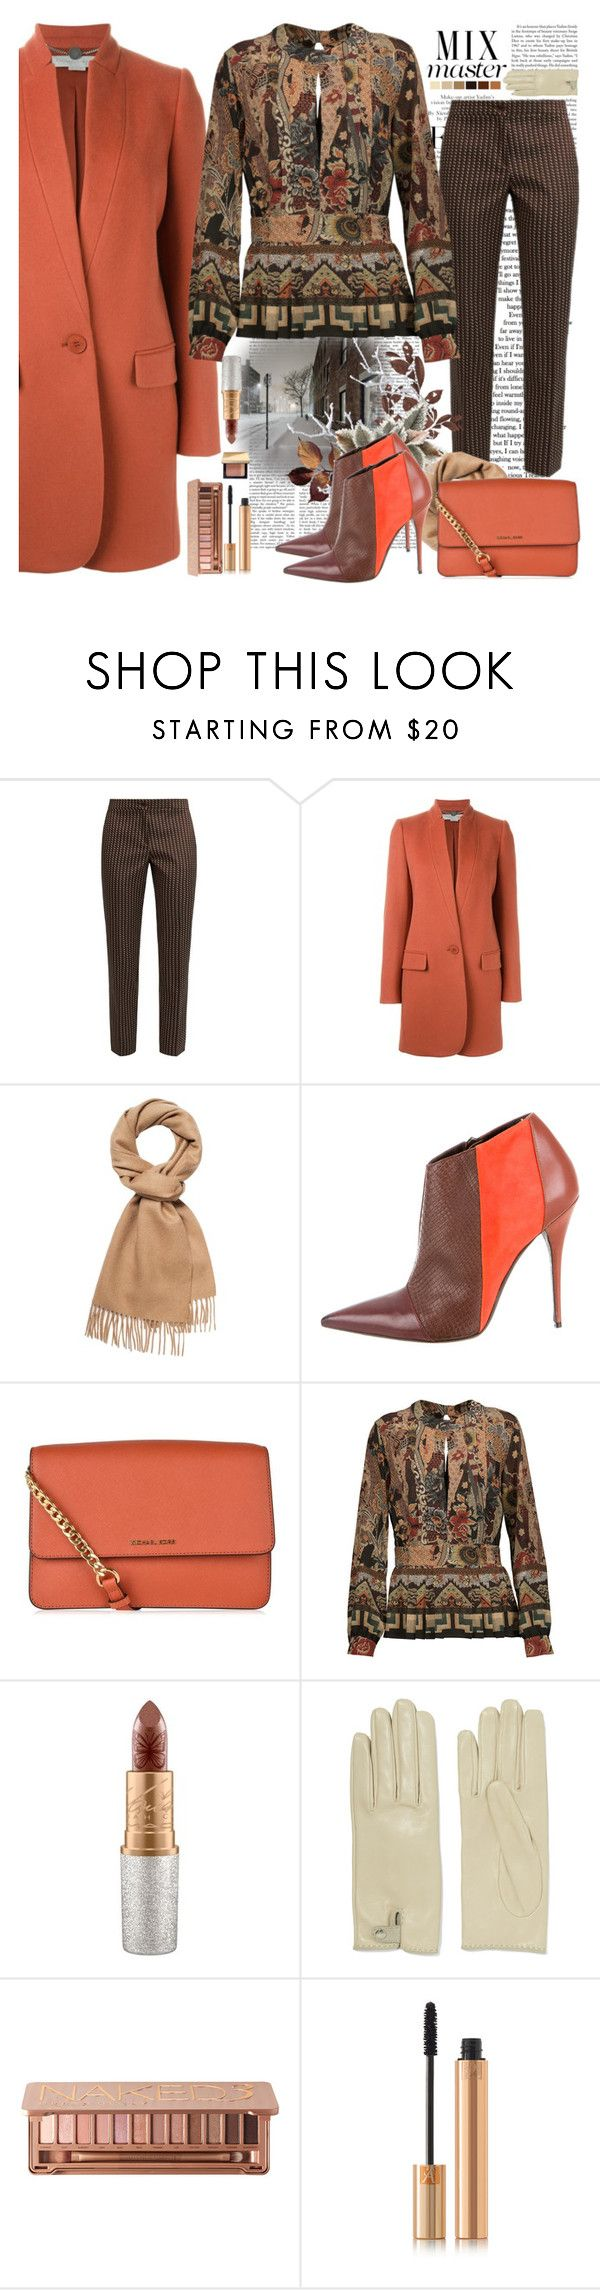 """""""Etro - Pleated Printed Silk Crepe De Chine Peplum Blouse"""" by the-wardrobe-of-wishes ❤ liked on Polyvore featuring Libertine, Etro, STELLA McCARTNEY, Narciso Rodriguez, MICHAEL Michael Kors, MAC Cosmetics, Seed Design, Causse, Urban Decay and Yves Saint Laurent"""